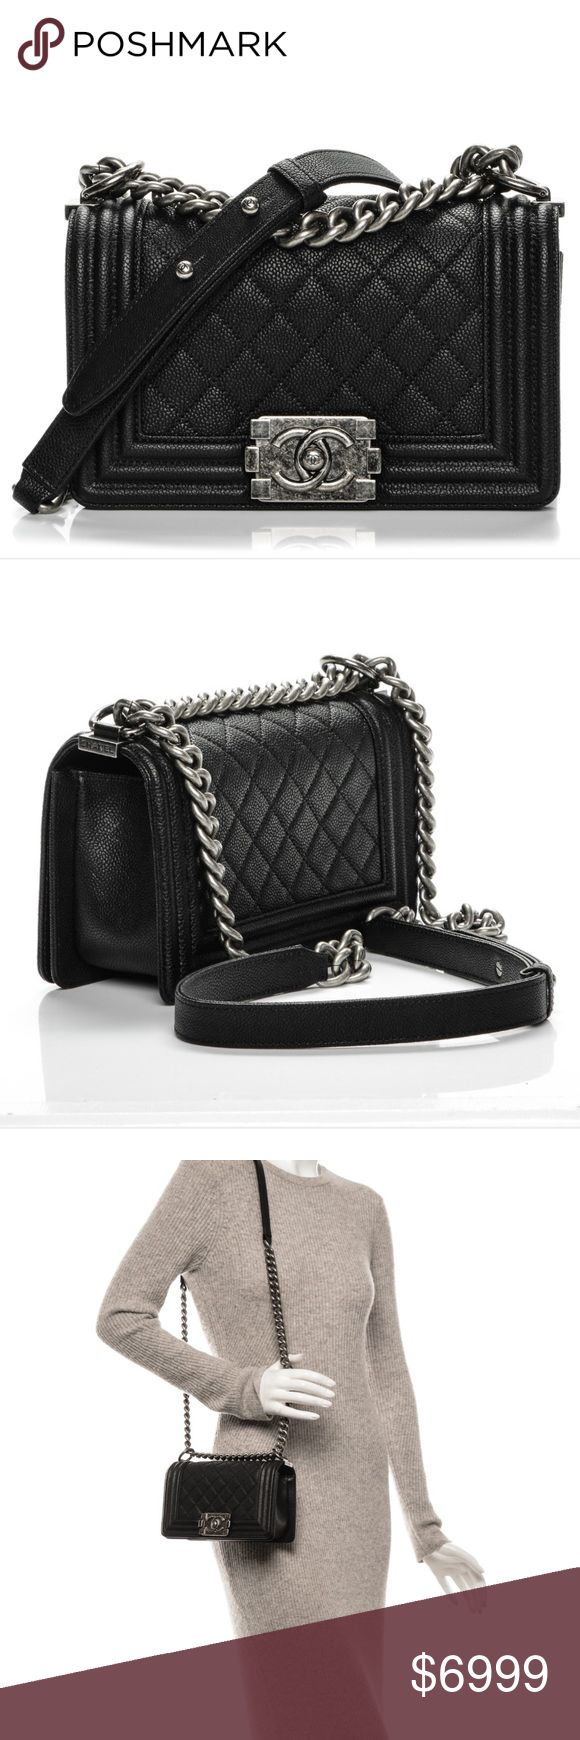 Chanel Quilted Caviar Flap Black Bag Leather We guarantee this is an authentic CHANEL Caviar Quilted Small Boy Flap Black or 100% of your money back. This chic shoulder bag is crafted of finely grained caviar-grained lambskin leather with a black. The bag features a ruthenium shoulder chain with a black leather shoulder pad, a diamond-quilted flap with a linear-quilted border, and a ruthenium CC boy push lock. The flap opens to a matching fabric interior with a pocket. This petite shoulder…